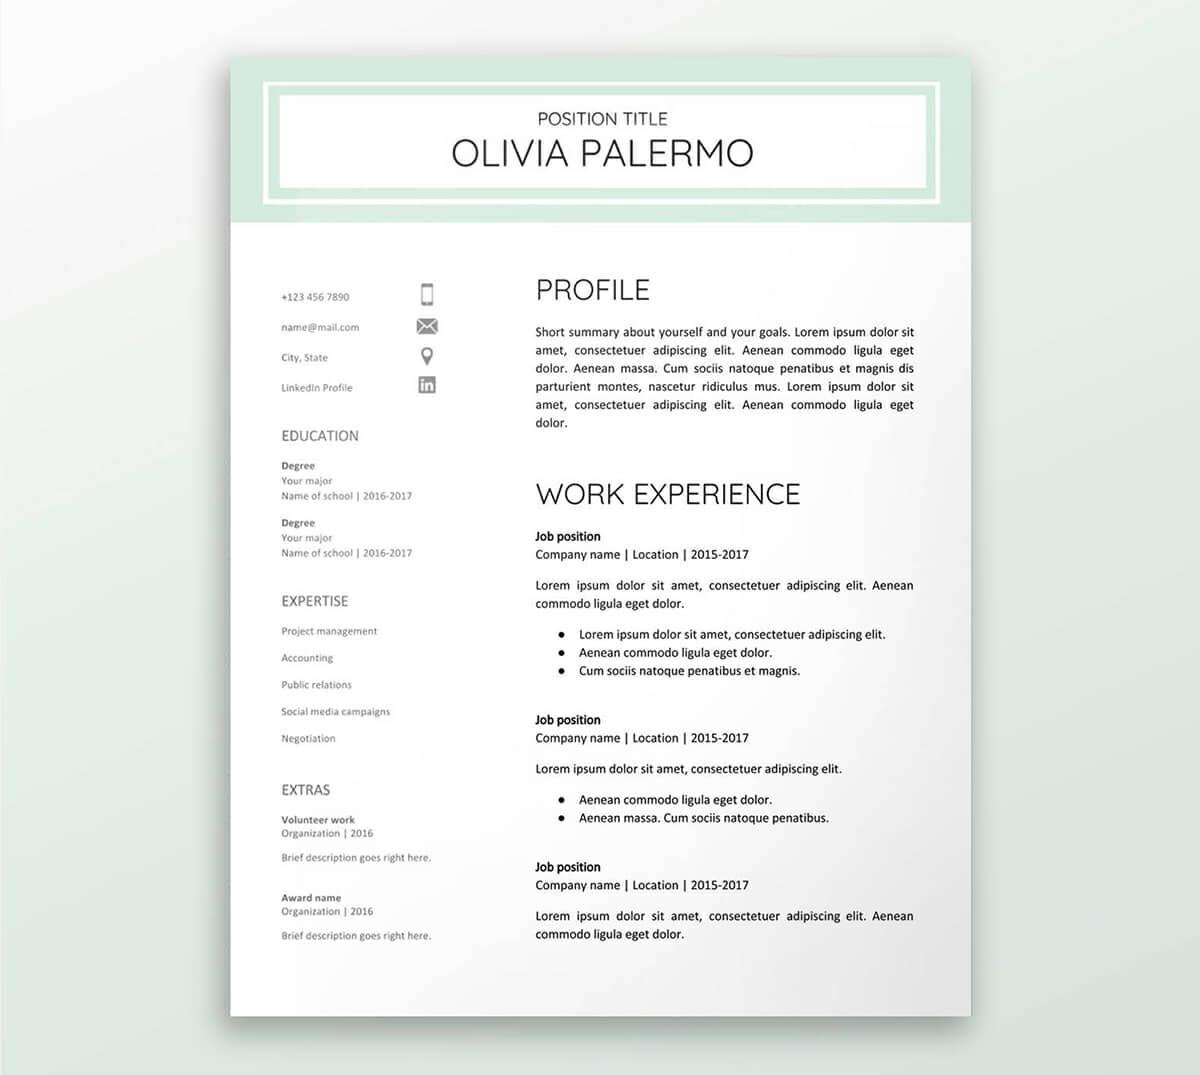 Resume Templates On Google Docs Google Docs Resume Templates 10 Examples To Download & Use Now